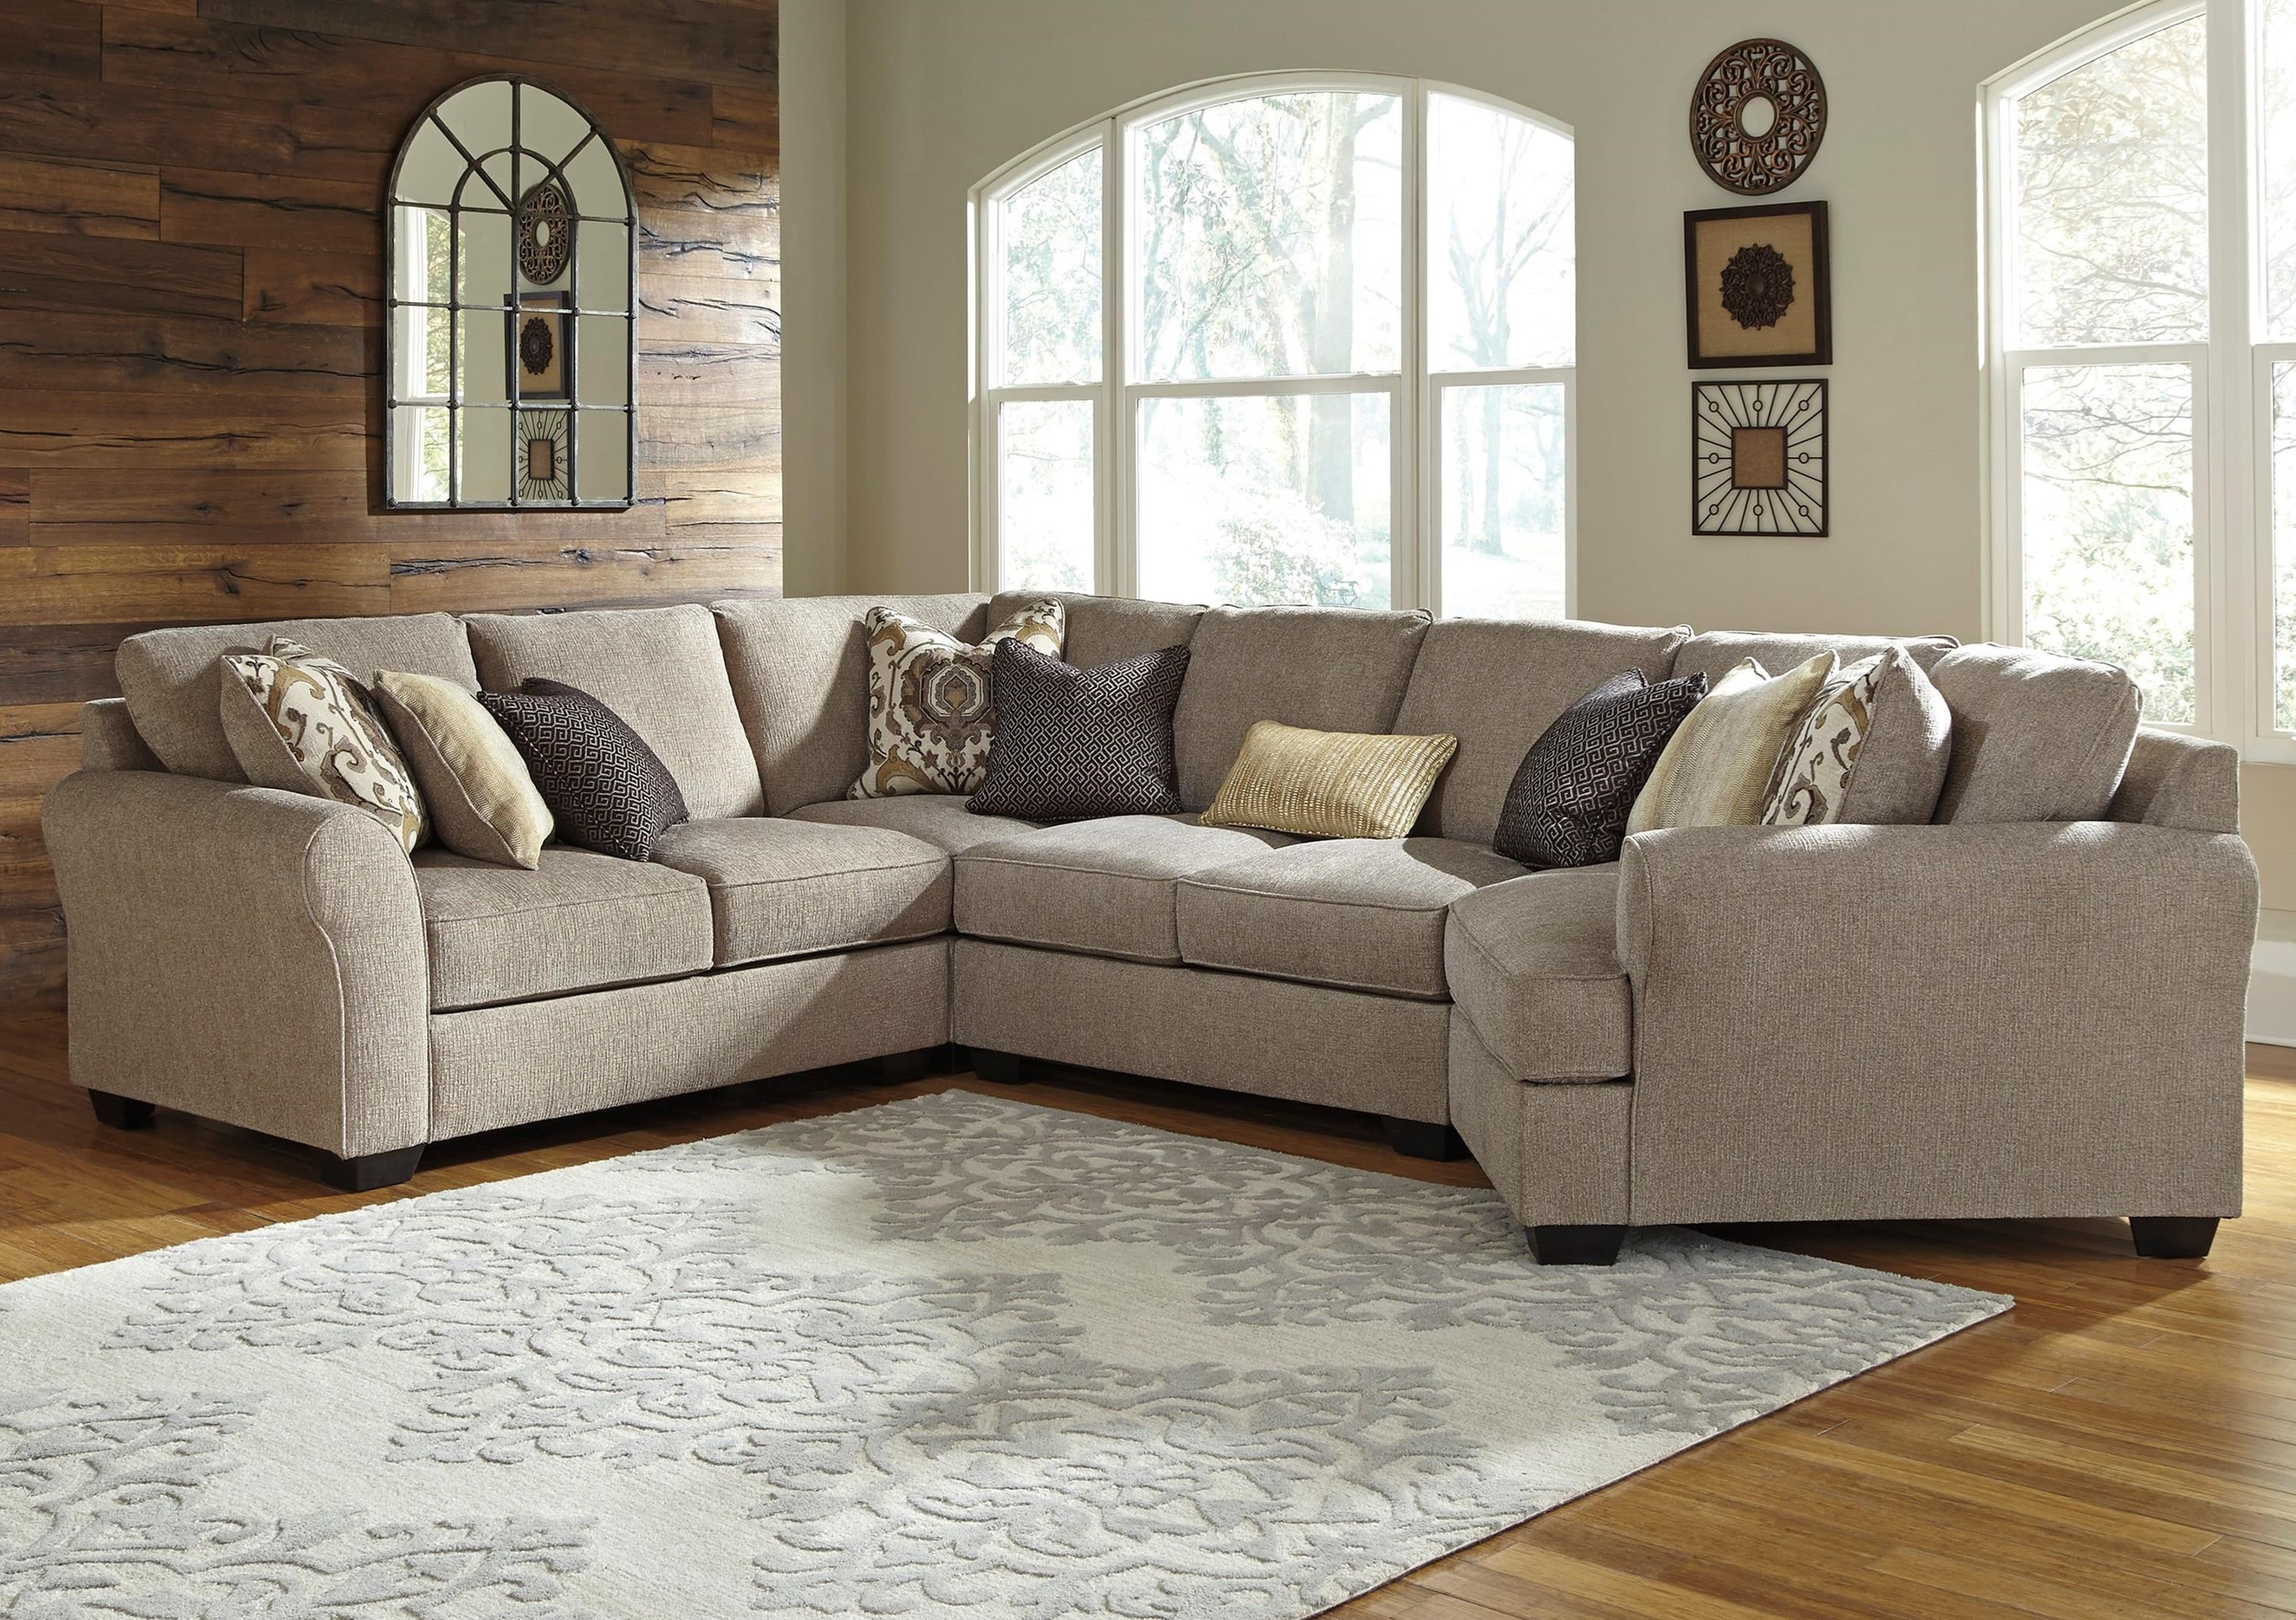 Pantomine 4-Piece Sectional with Cuddler by Benchcraft at Walker's Furniture